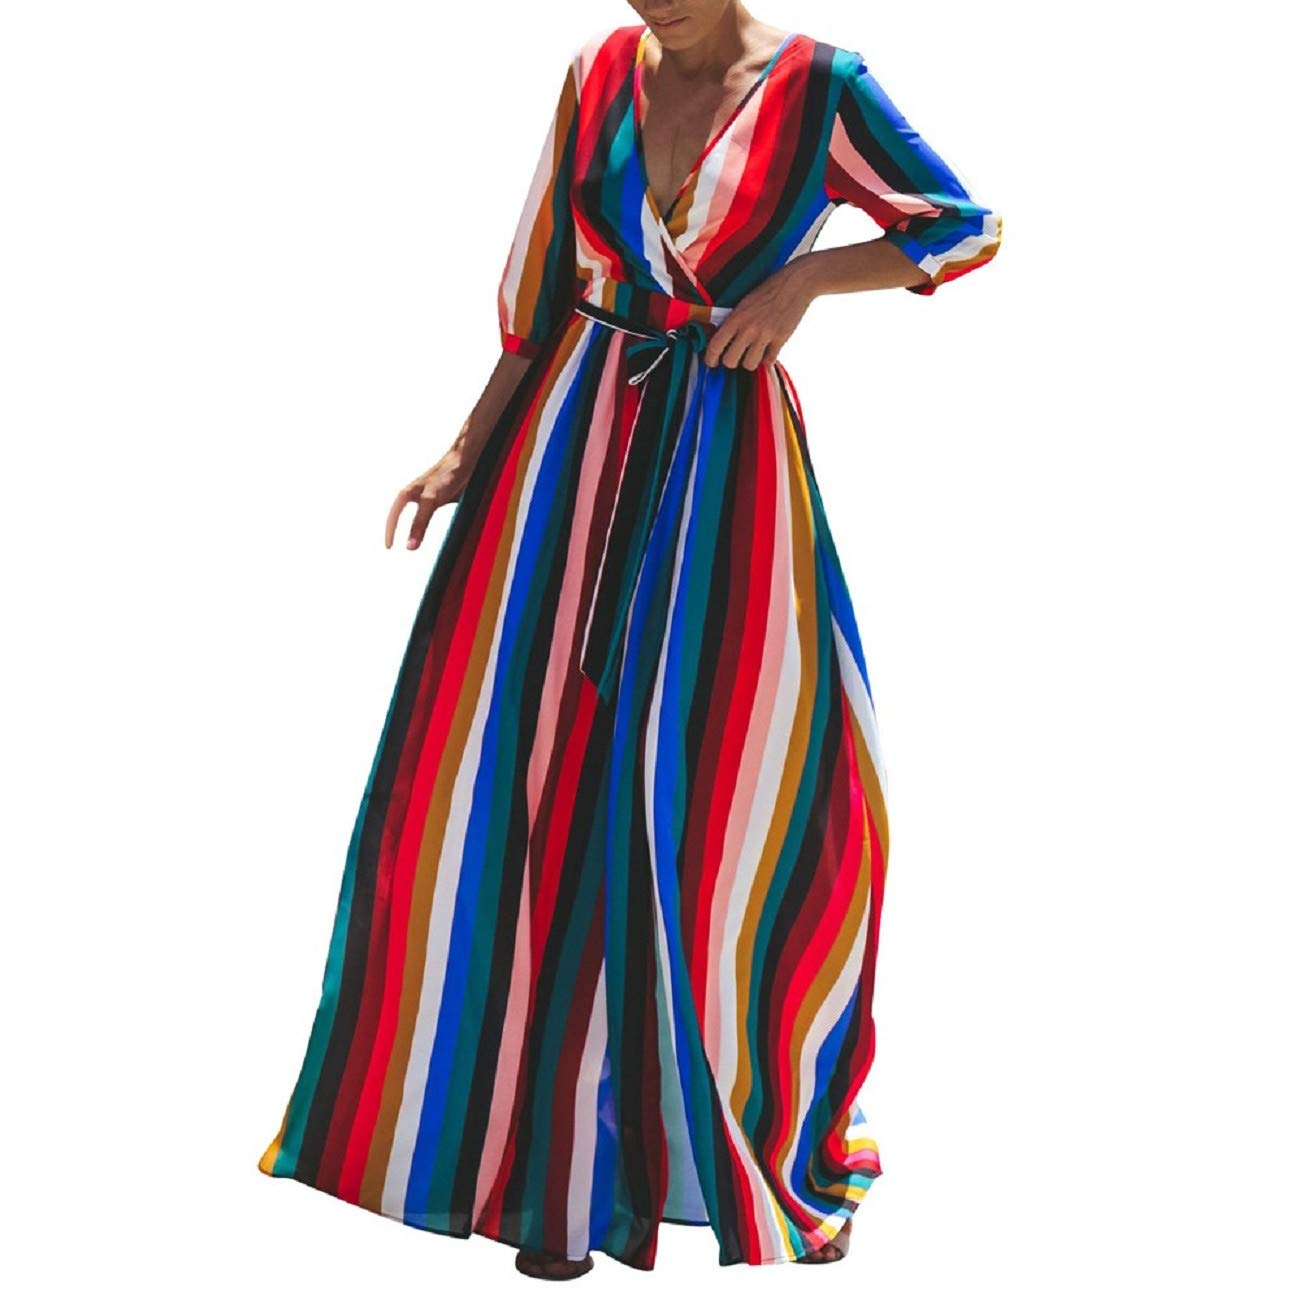 Womens Summer Dress Casual Color Striped Maxi Dress Seven-Quarter Sleeve Slit Side Long Dress with Belt by FAPIZI